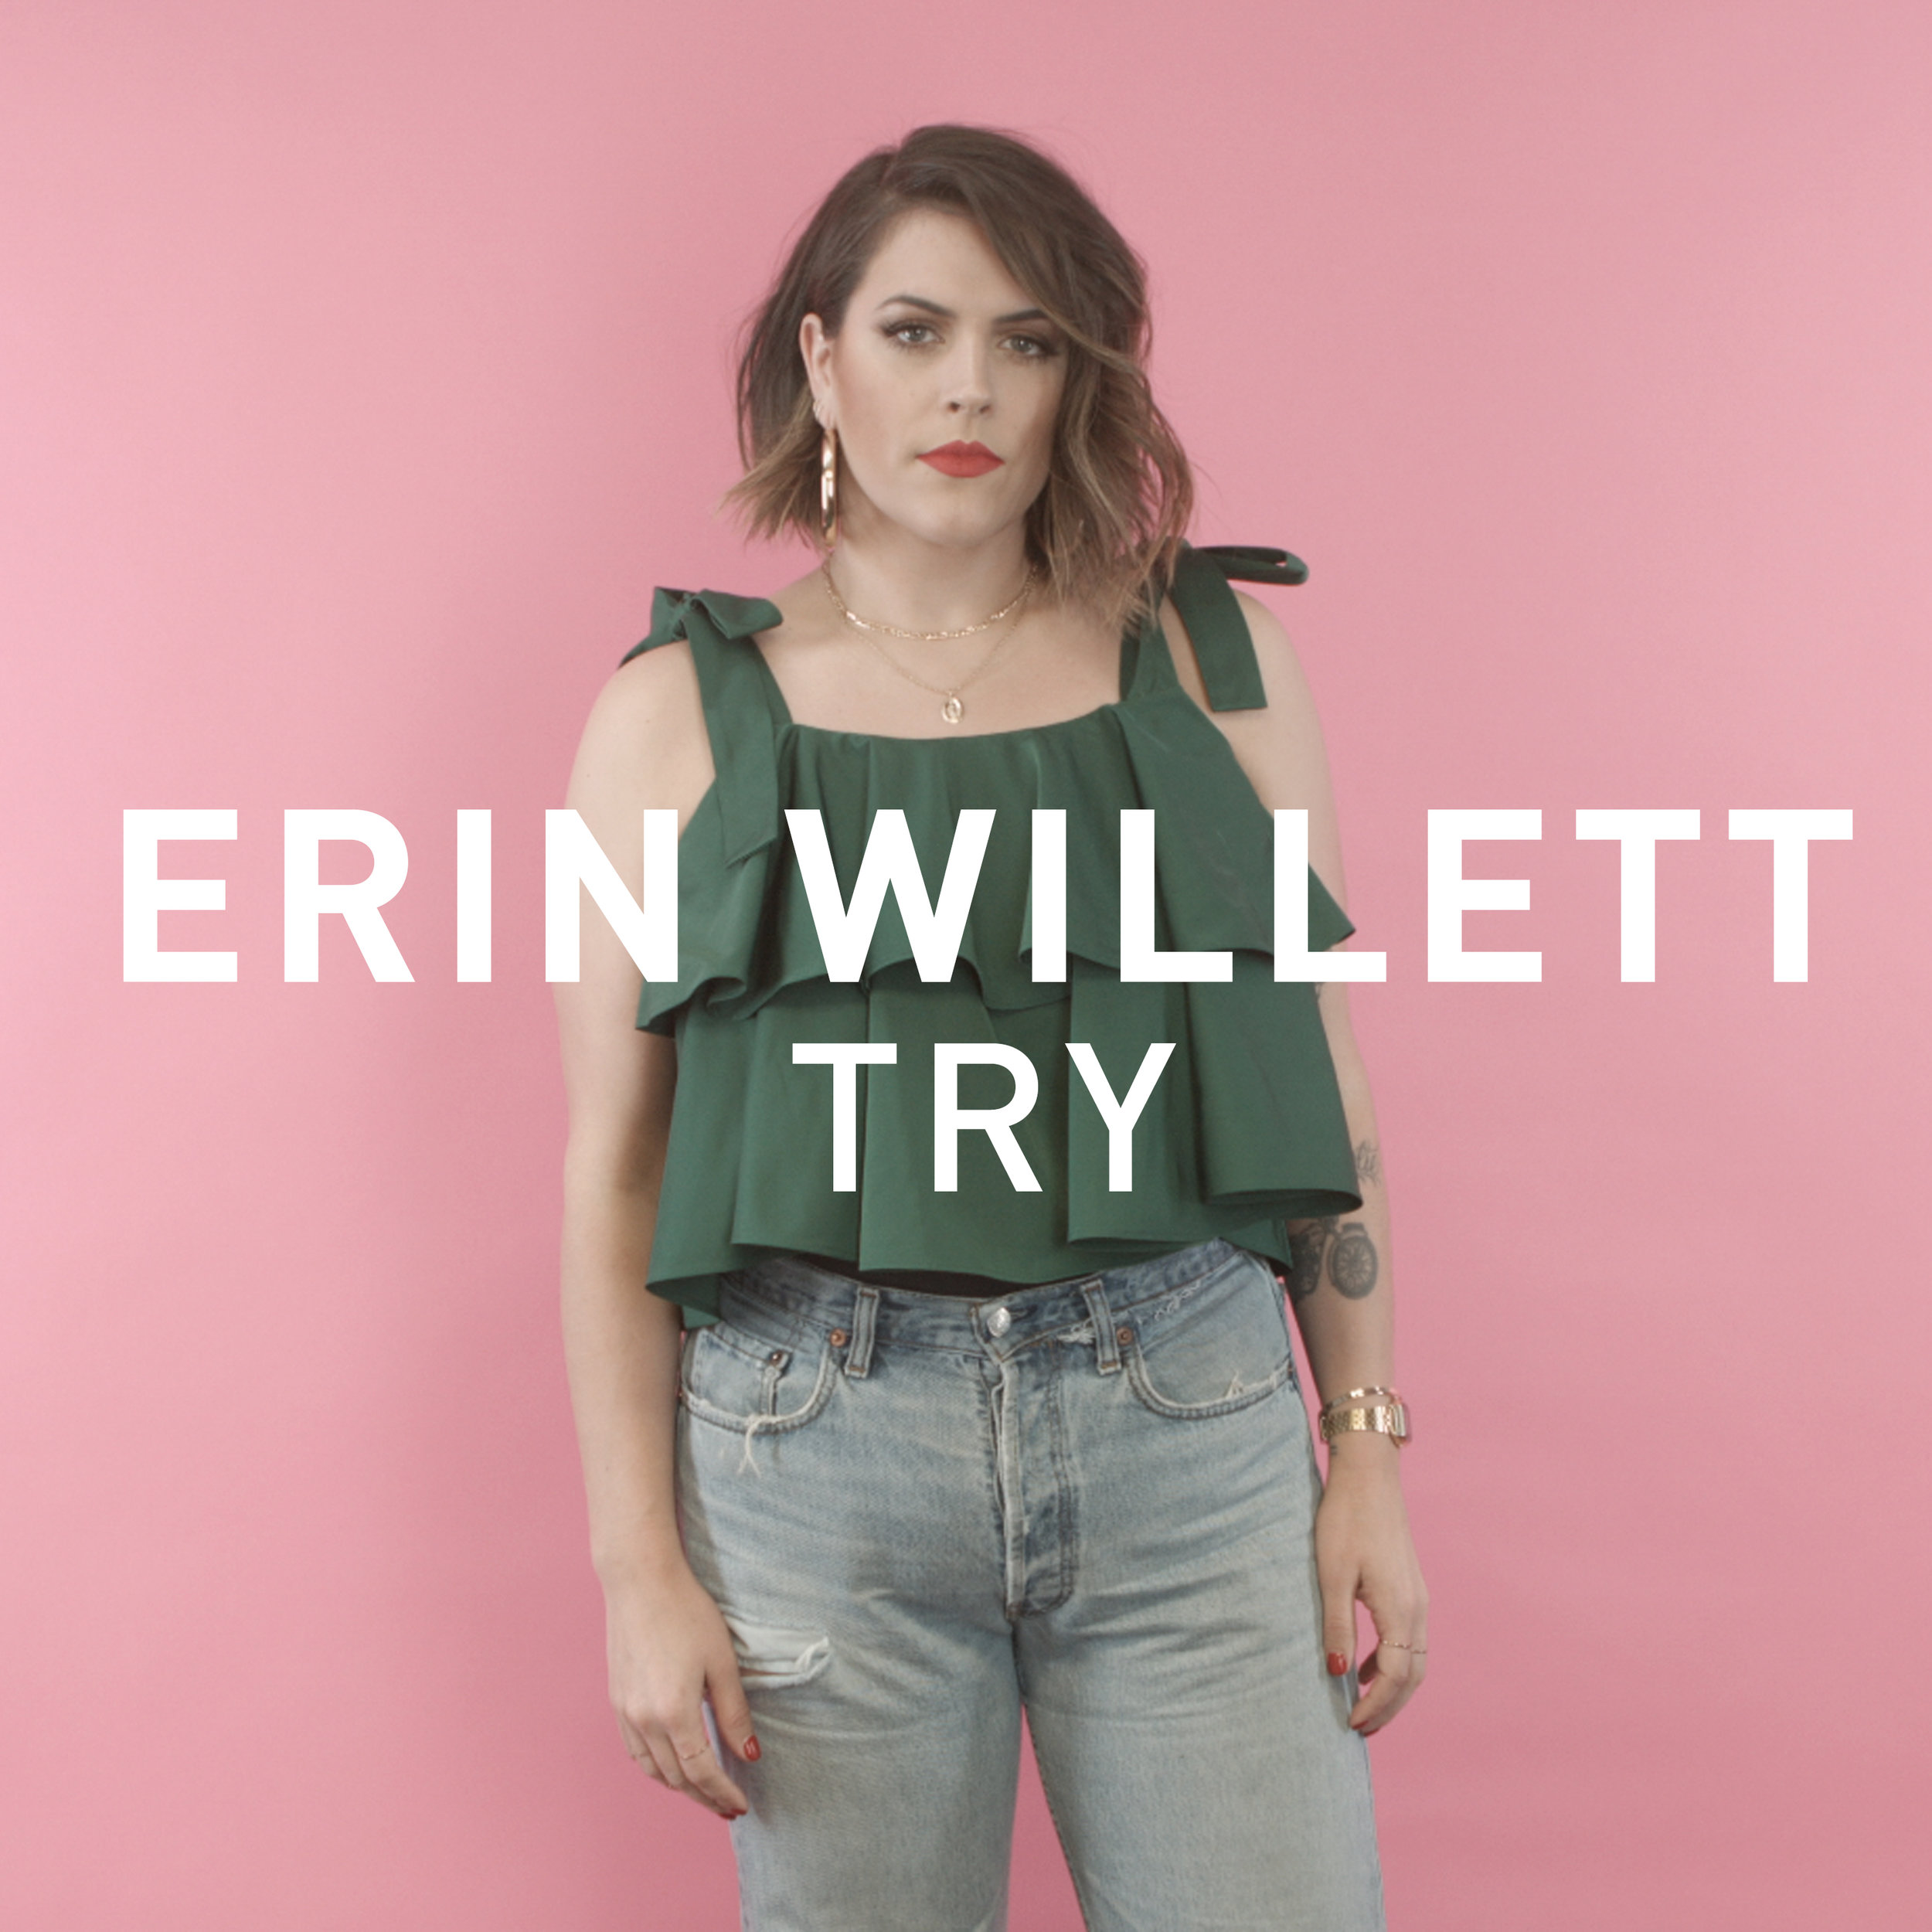 Erin Willett Try Thumb.jpg